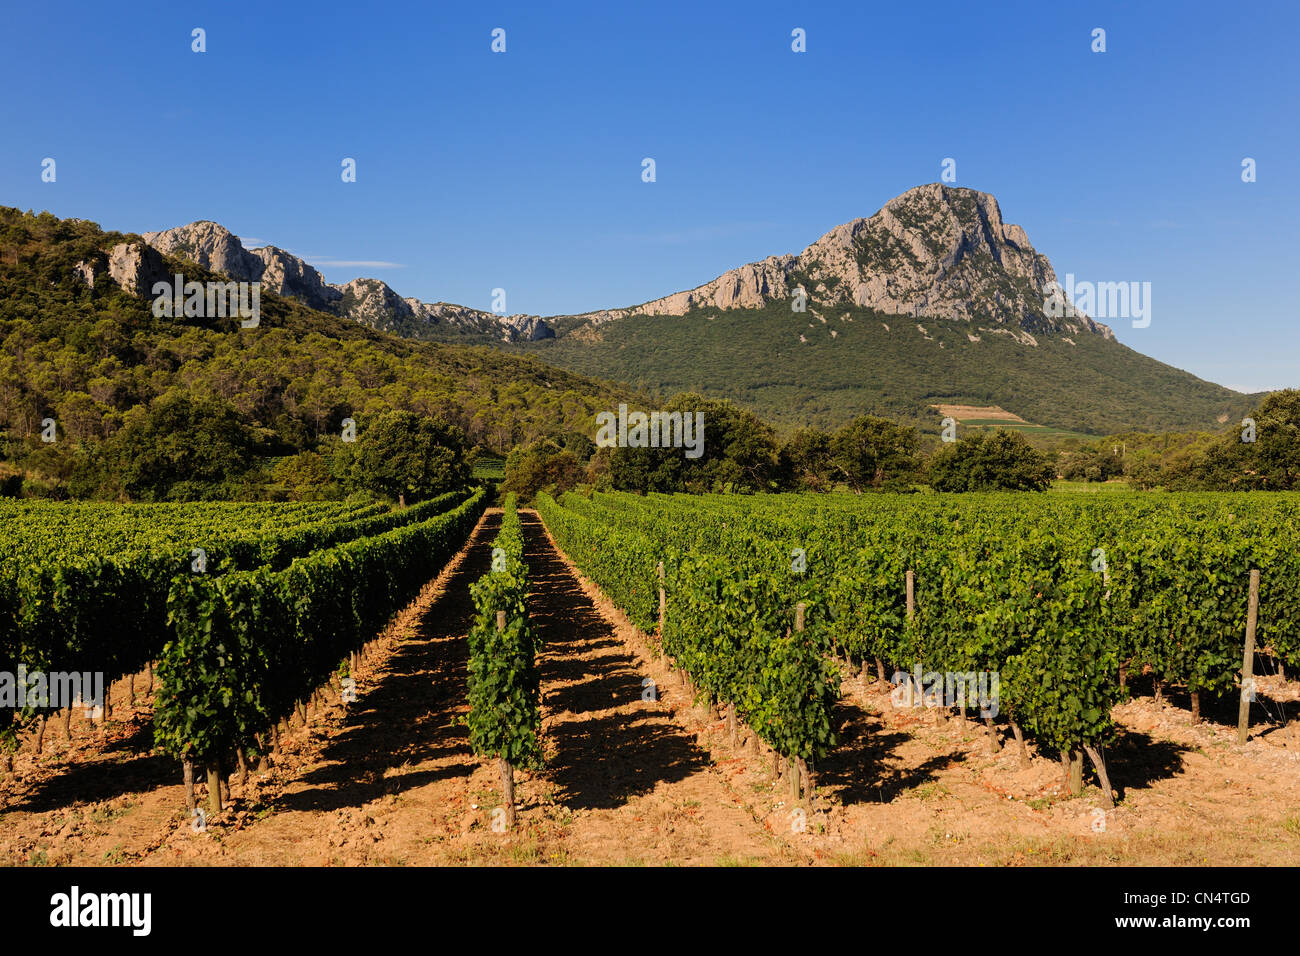 France, Herault, vineyards in front of the Pic St Loup - Stock Image